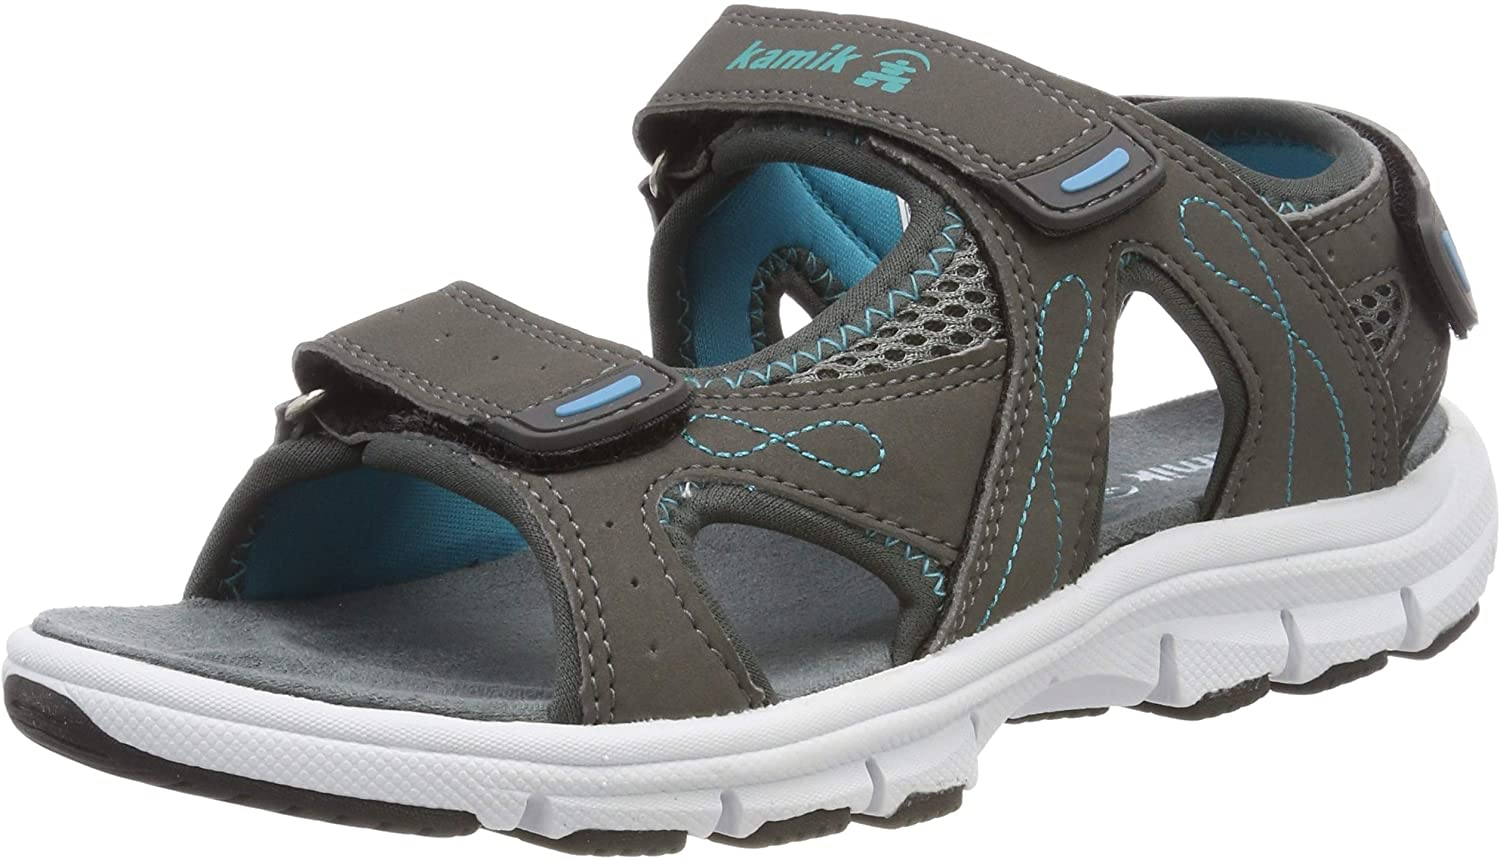 Kamik Women's Low-Top Sneakers Ankle Strap Sandals, Grey Charcoal Cha, 8 US